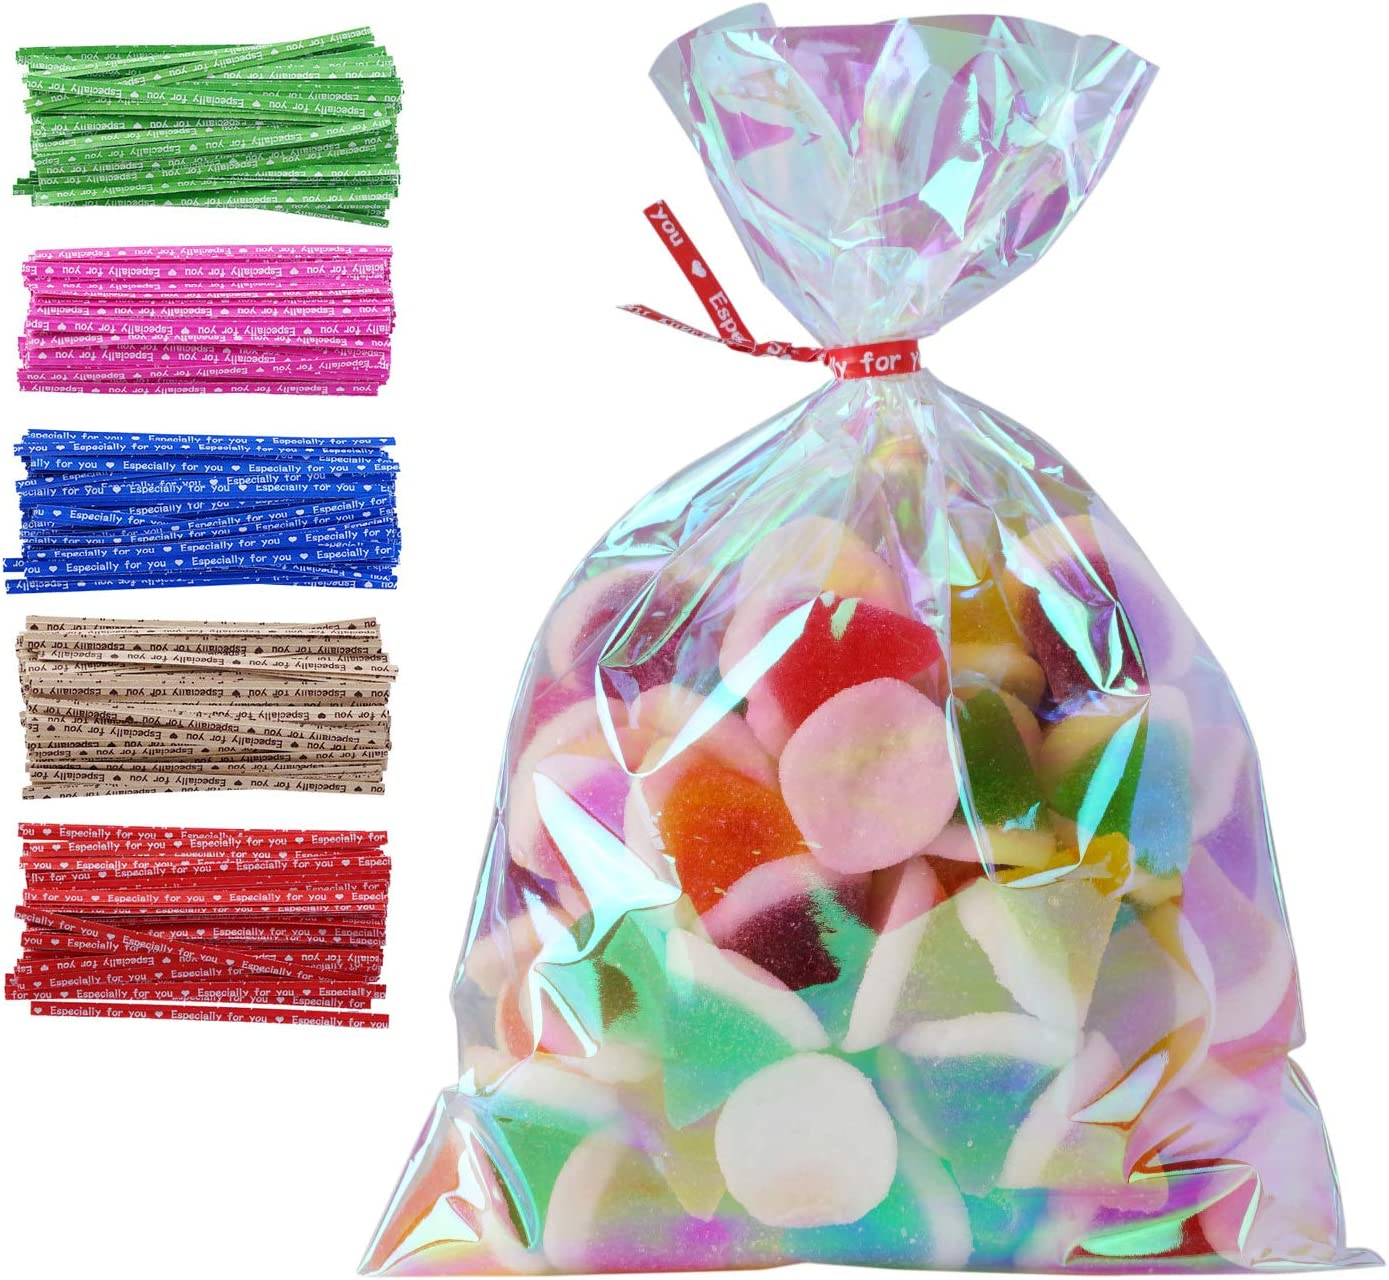 """100 Pack Iridescent Holographic Cellophane Party Favor Treat Bags with 5 Colors Twist Ties Good for Themed Celebrations Baby Showers Weddings Girls Birthday Party Supplies (5"""" x 7"""")"""